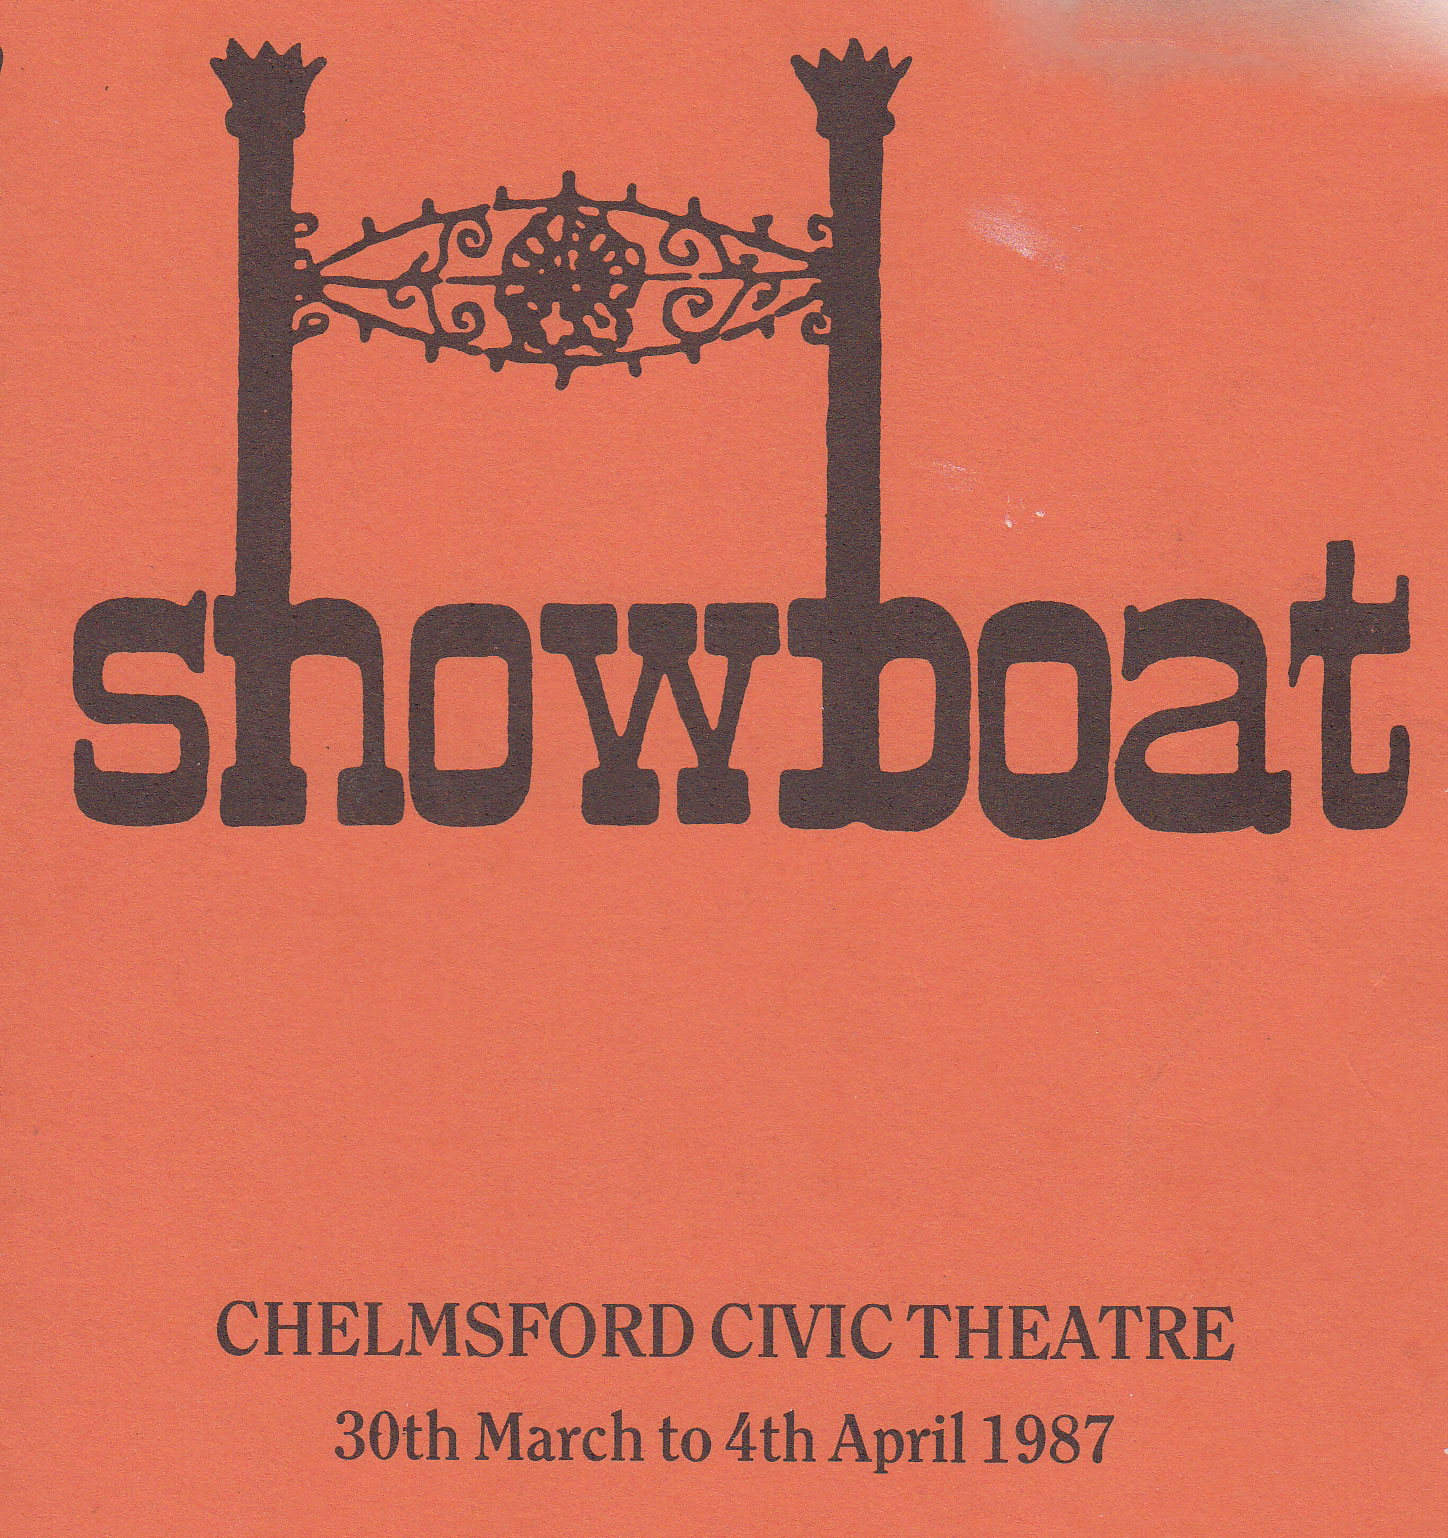 Show Boat (1987)